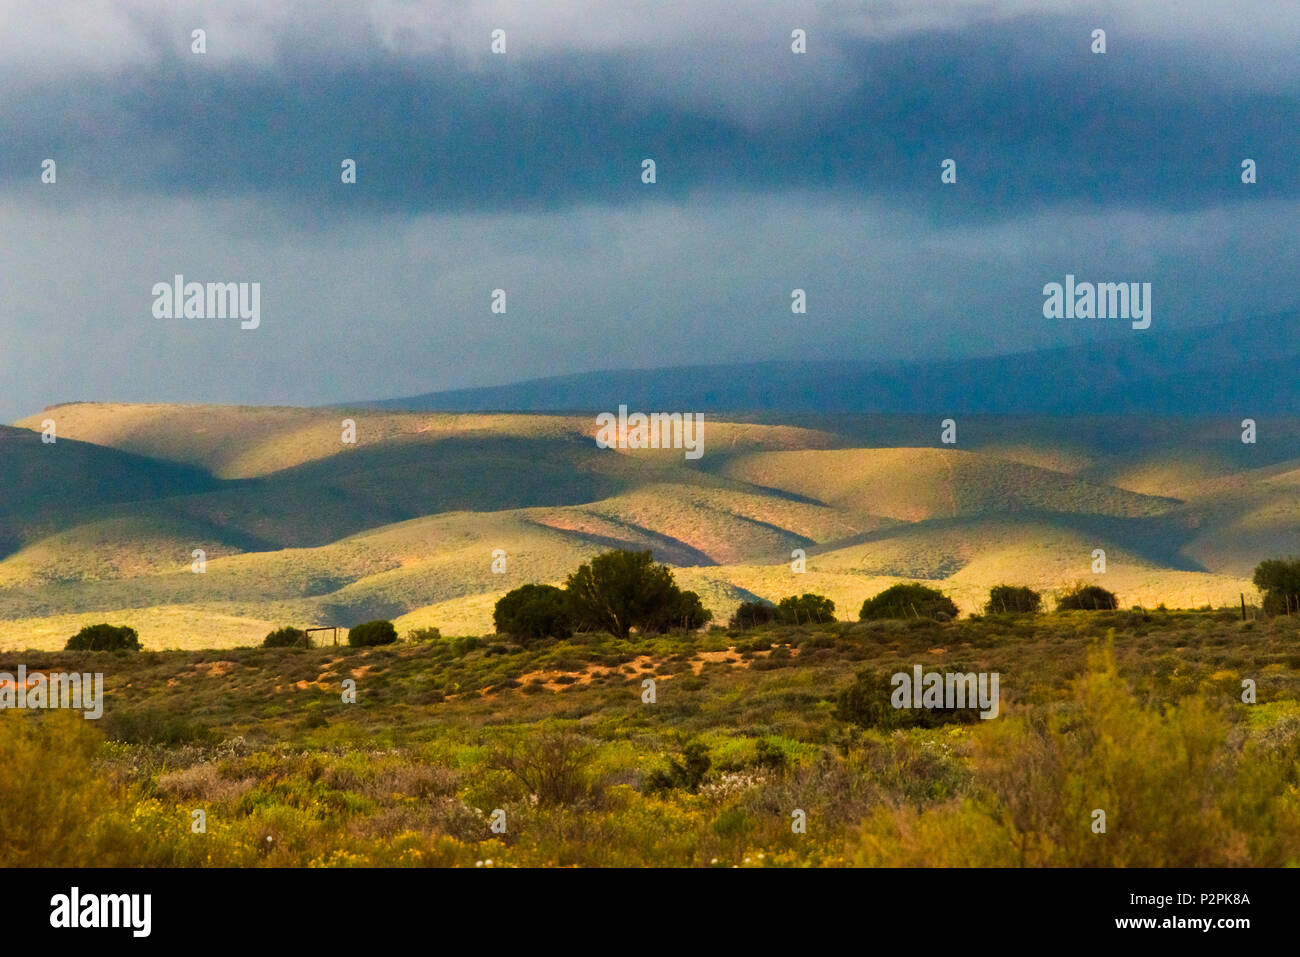 Bush land with mountain, Western Cape Province, South Africa - Stock Image